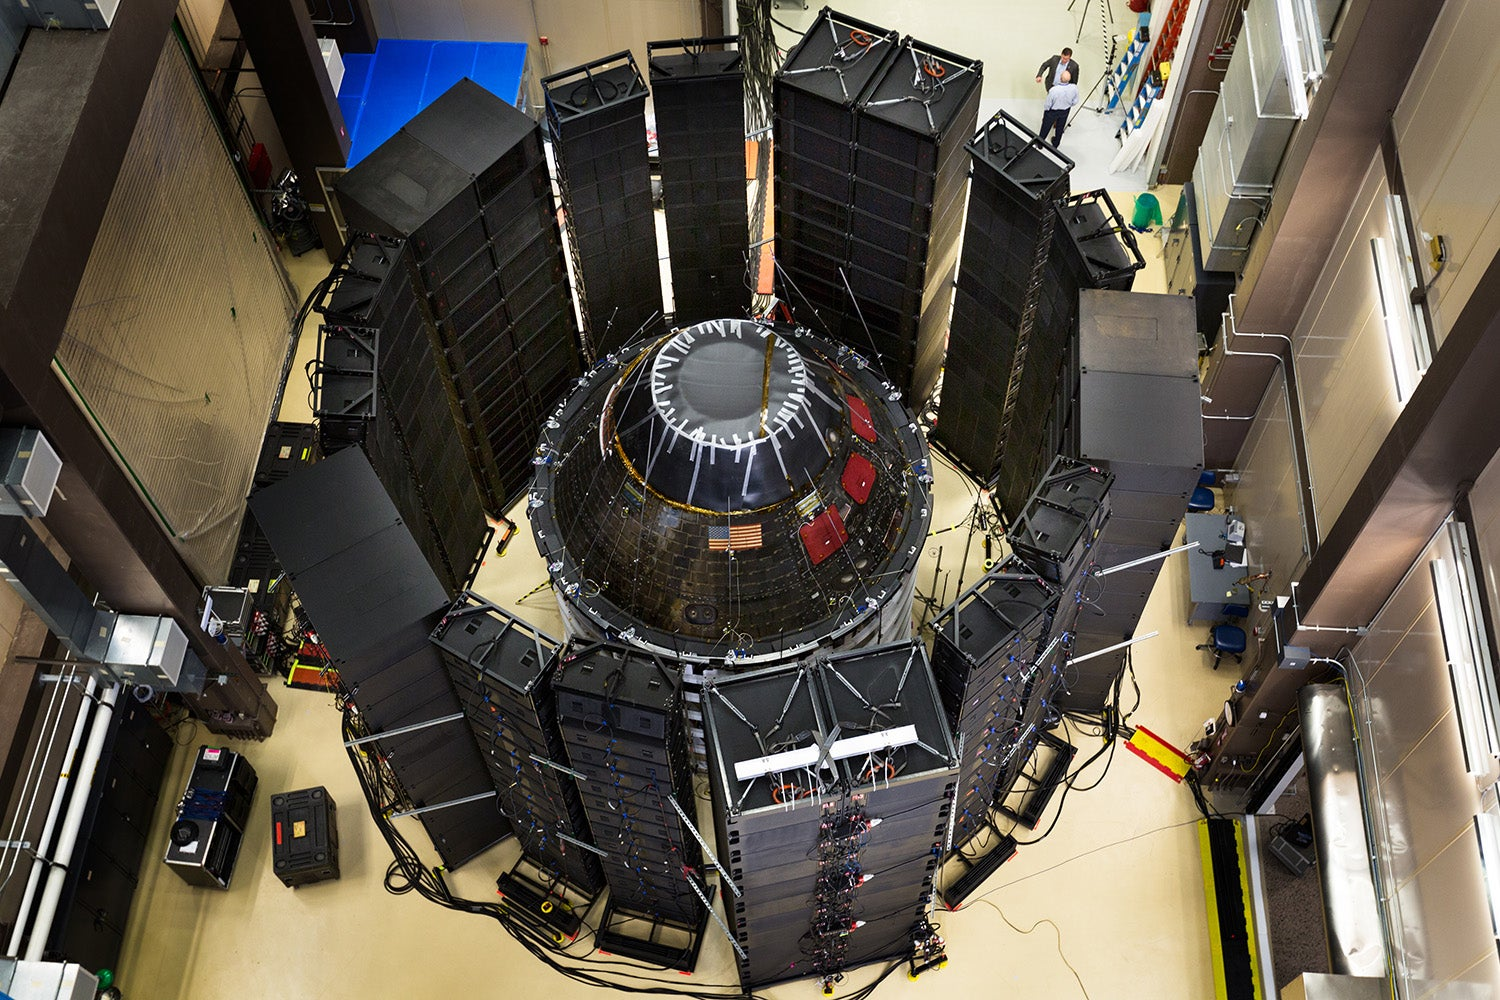 Lockheed Built a Ridiculously Huge Sound System That Will Never Play Music